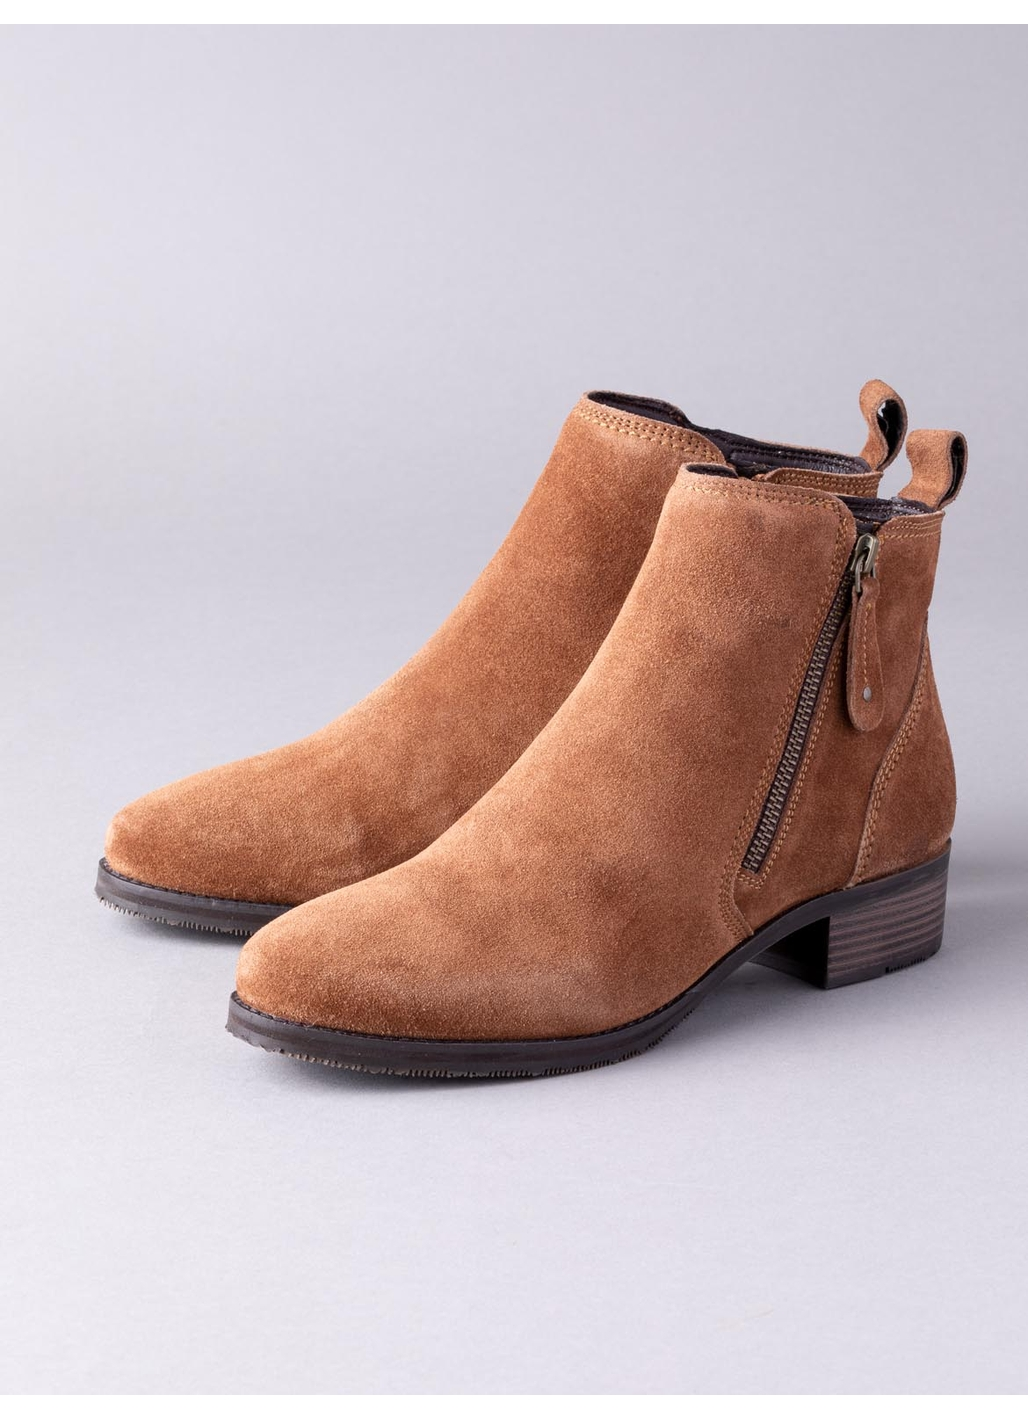 Lotus Samara Suede Ankle Boots in Tan